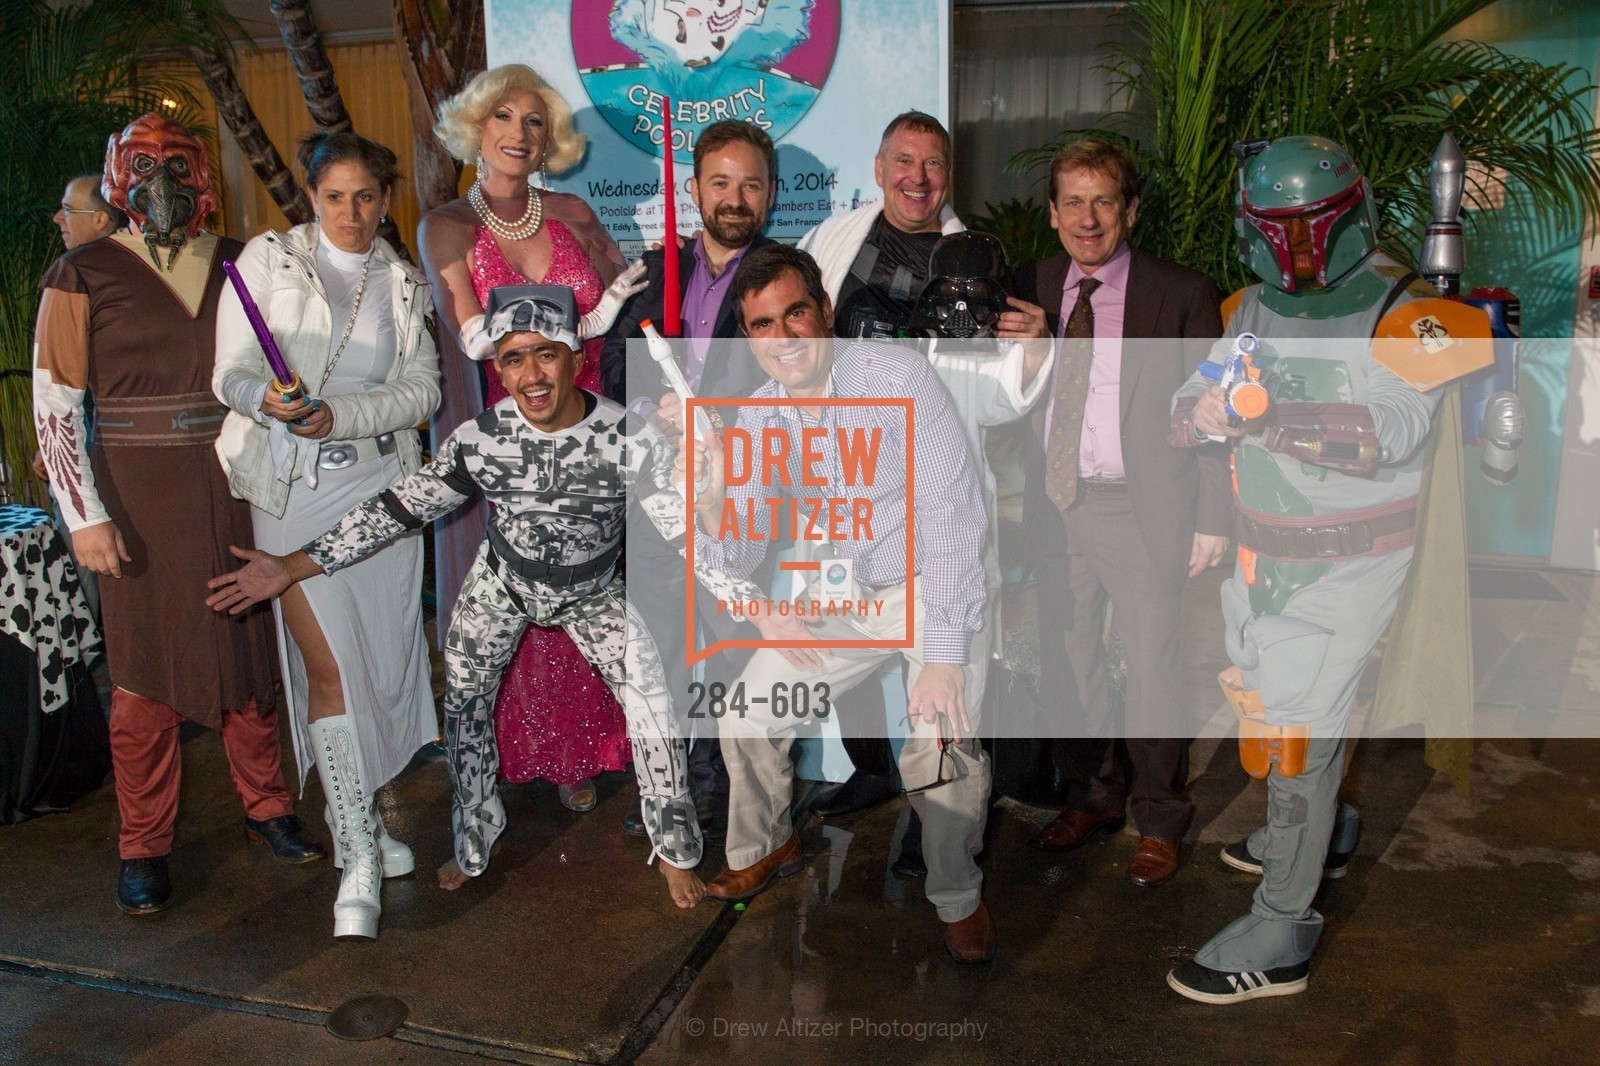 Jamie Teiser, Donna Sachet, Chris Taylor, Alfredo Casuso, David Perry, Paul Melbostad, 22nd Annual TNDC CELEBRITY POOL TOSS, US, October 8th, 2014,Drew Altizer, Drew Altizer Photography, full-service agency, private events, San Francisco photographer, photographer california